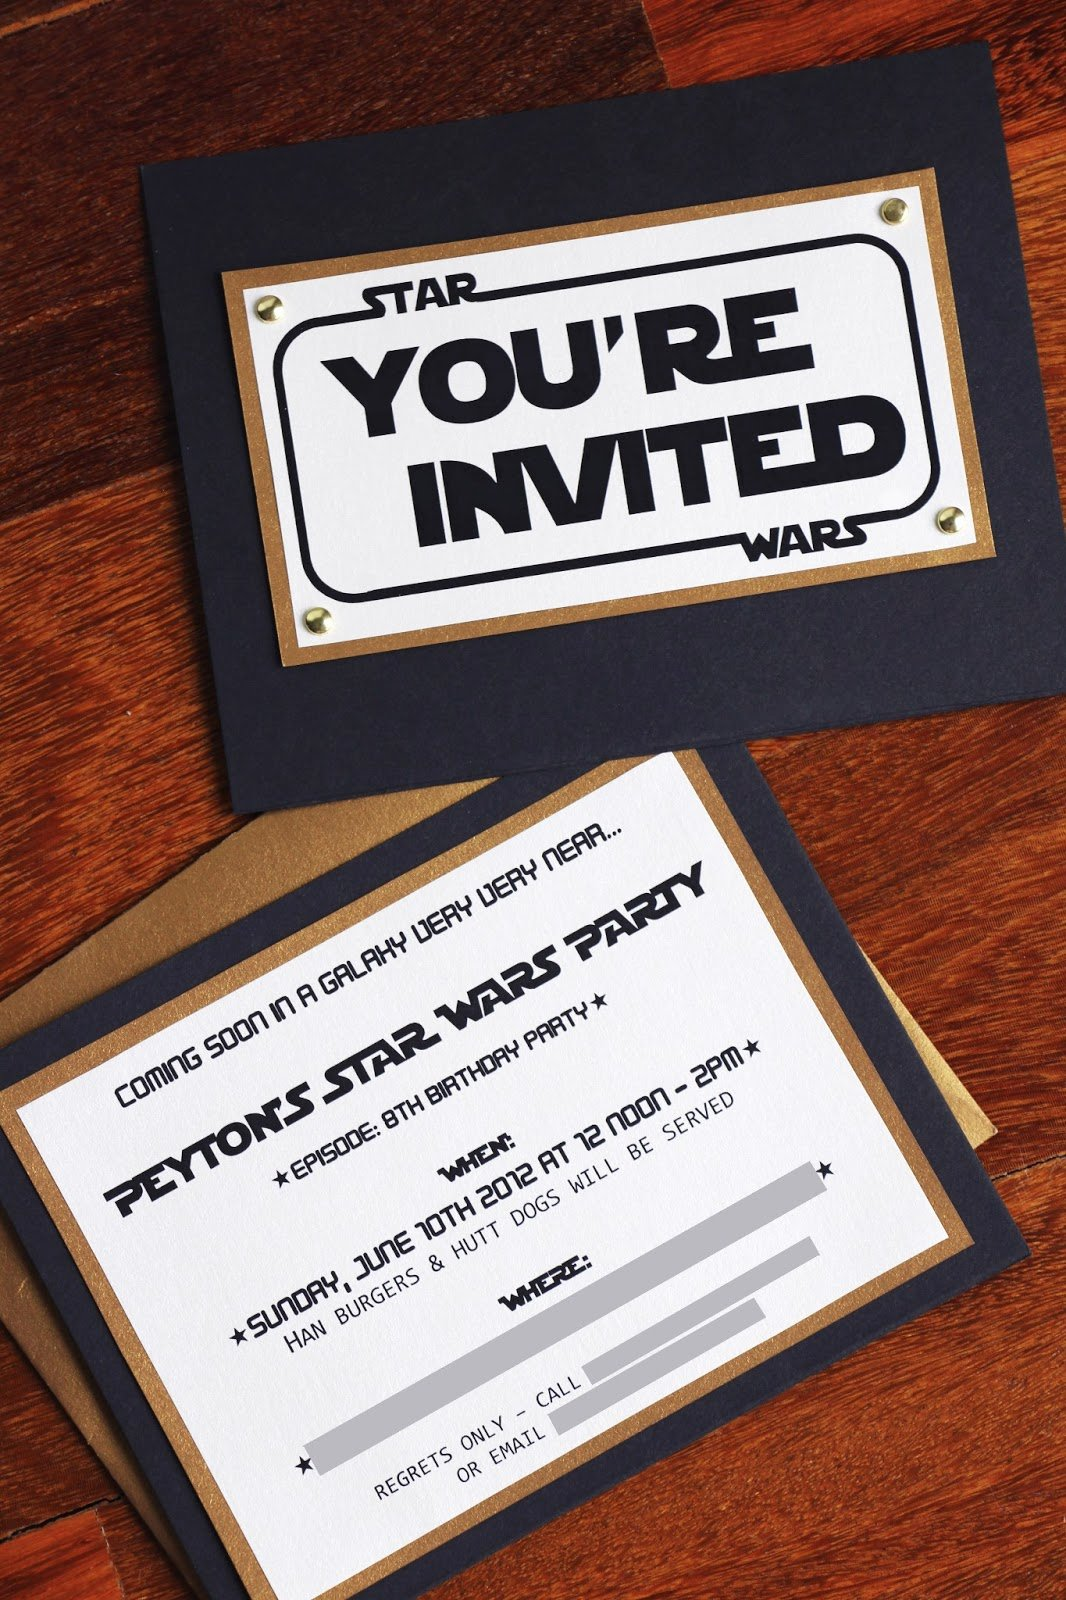 Star Wars Party Invitation Elegant the Contemplative Creative Star Wars Party Invitation